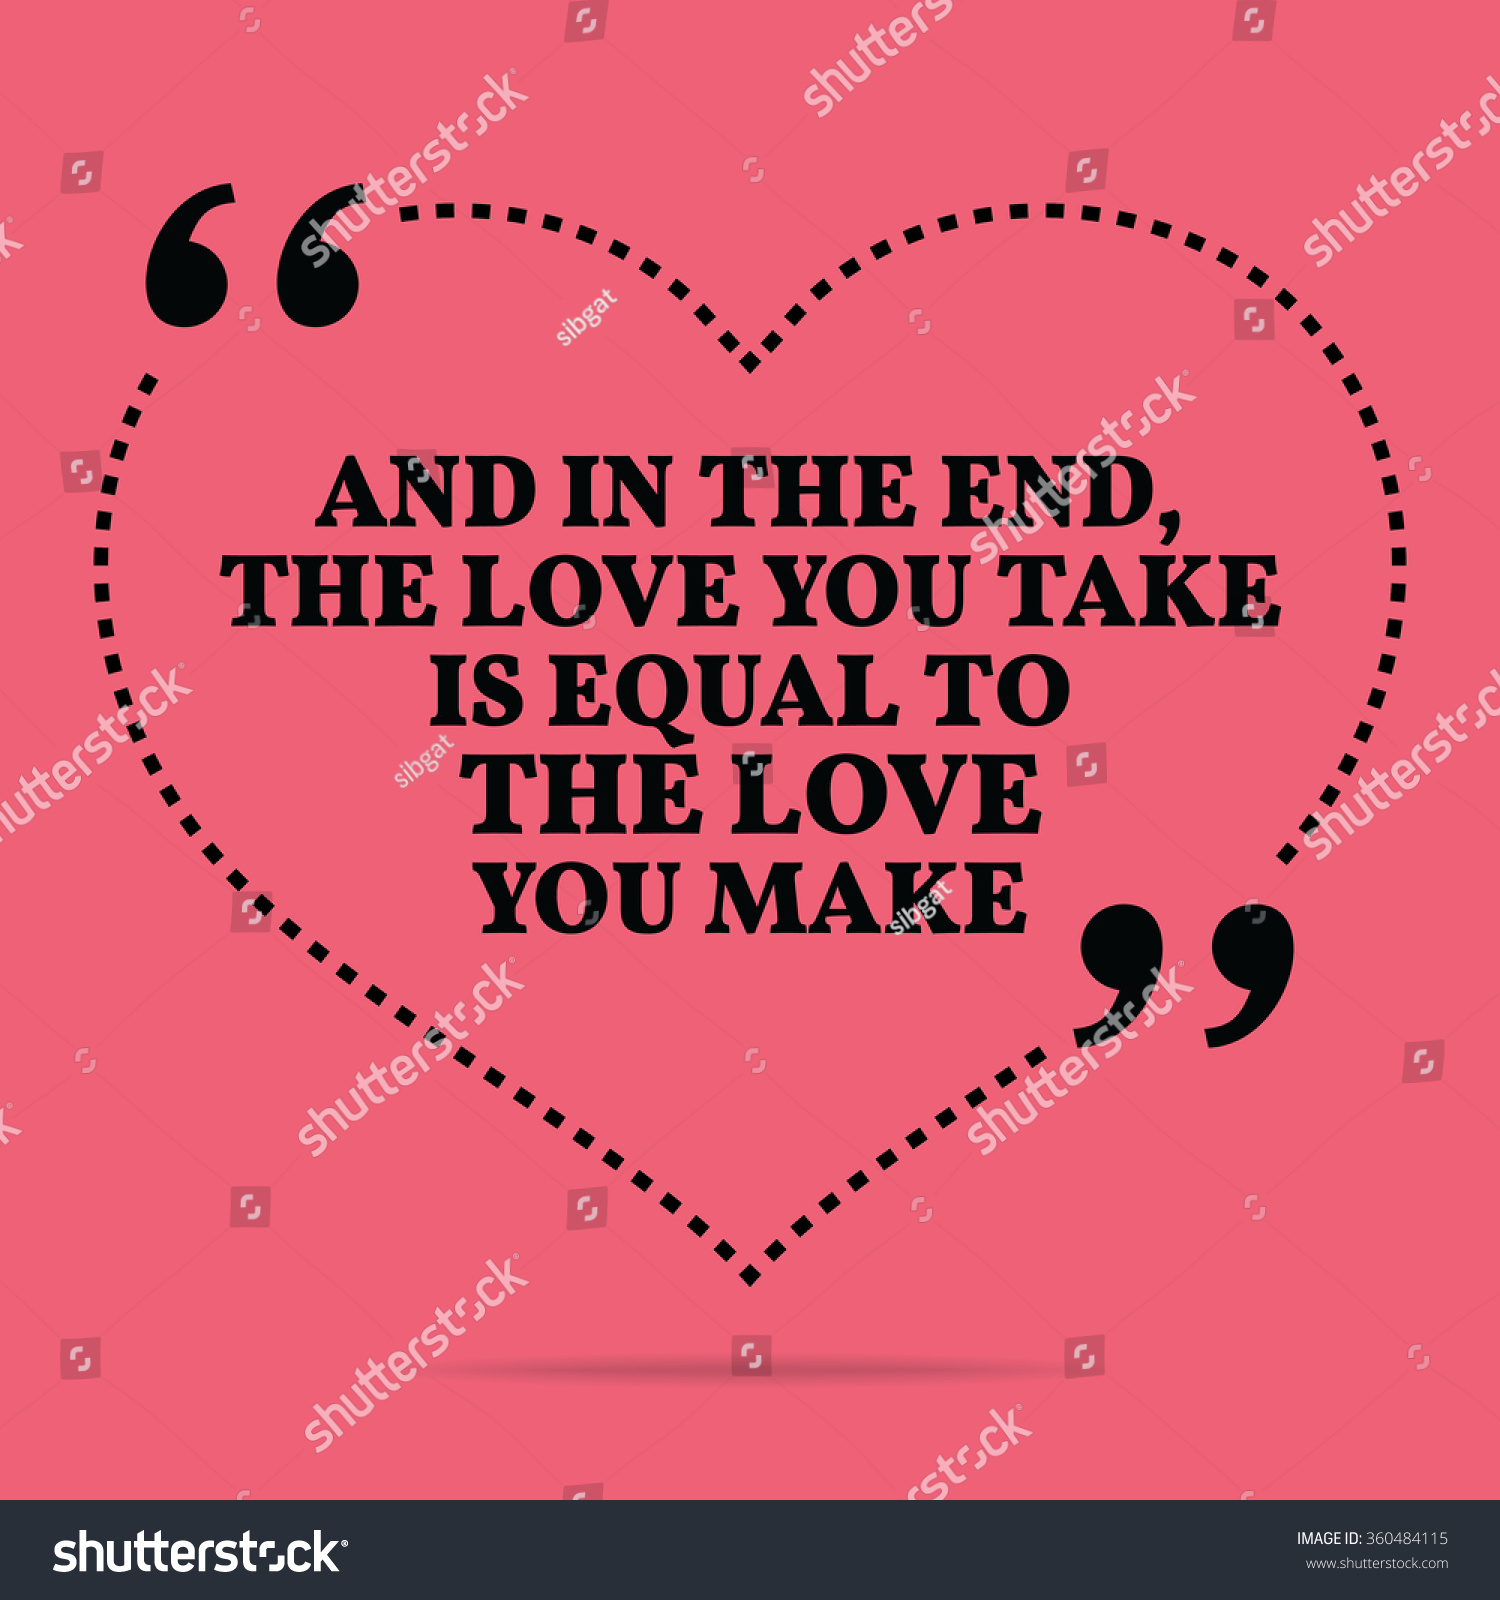 Inspirational Love Marriage Quote. And In The End, The